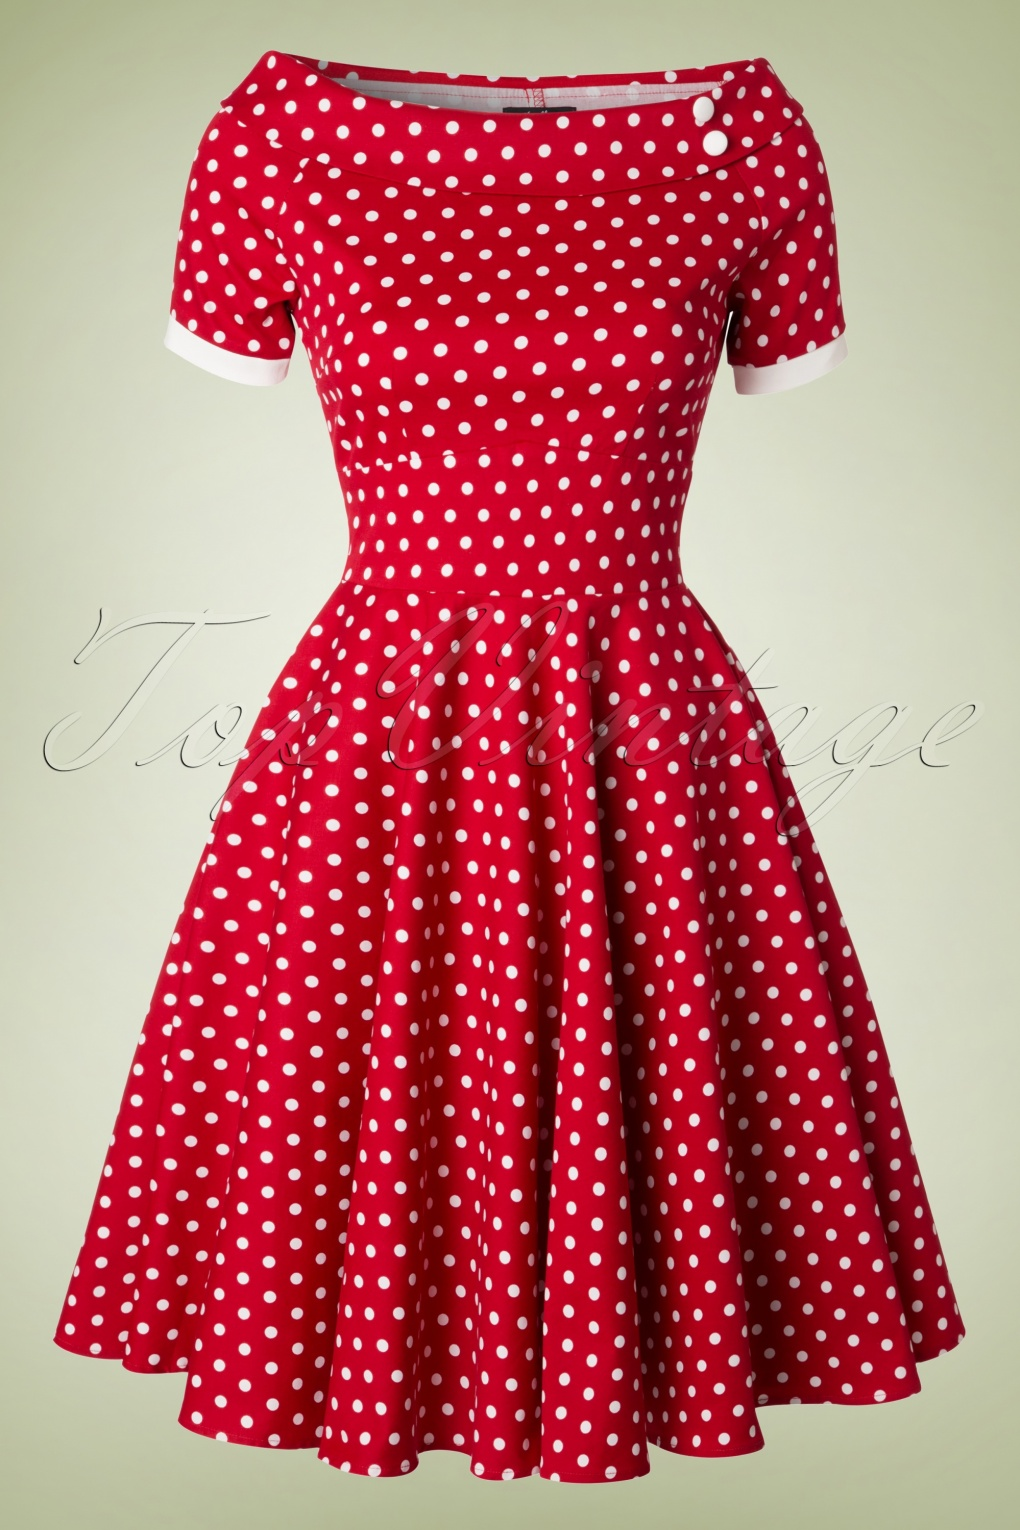 1940s Pinup Dresses for Sale 50s Darlene Polkadot Swing Dress in Red £45.55 AT vintagedancer.com